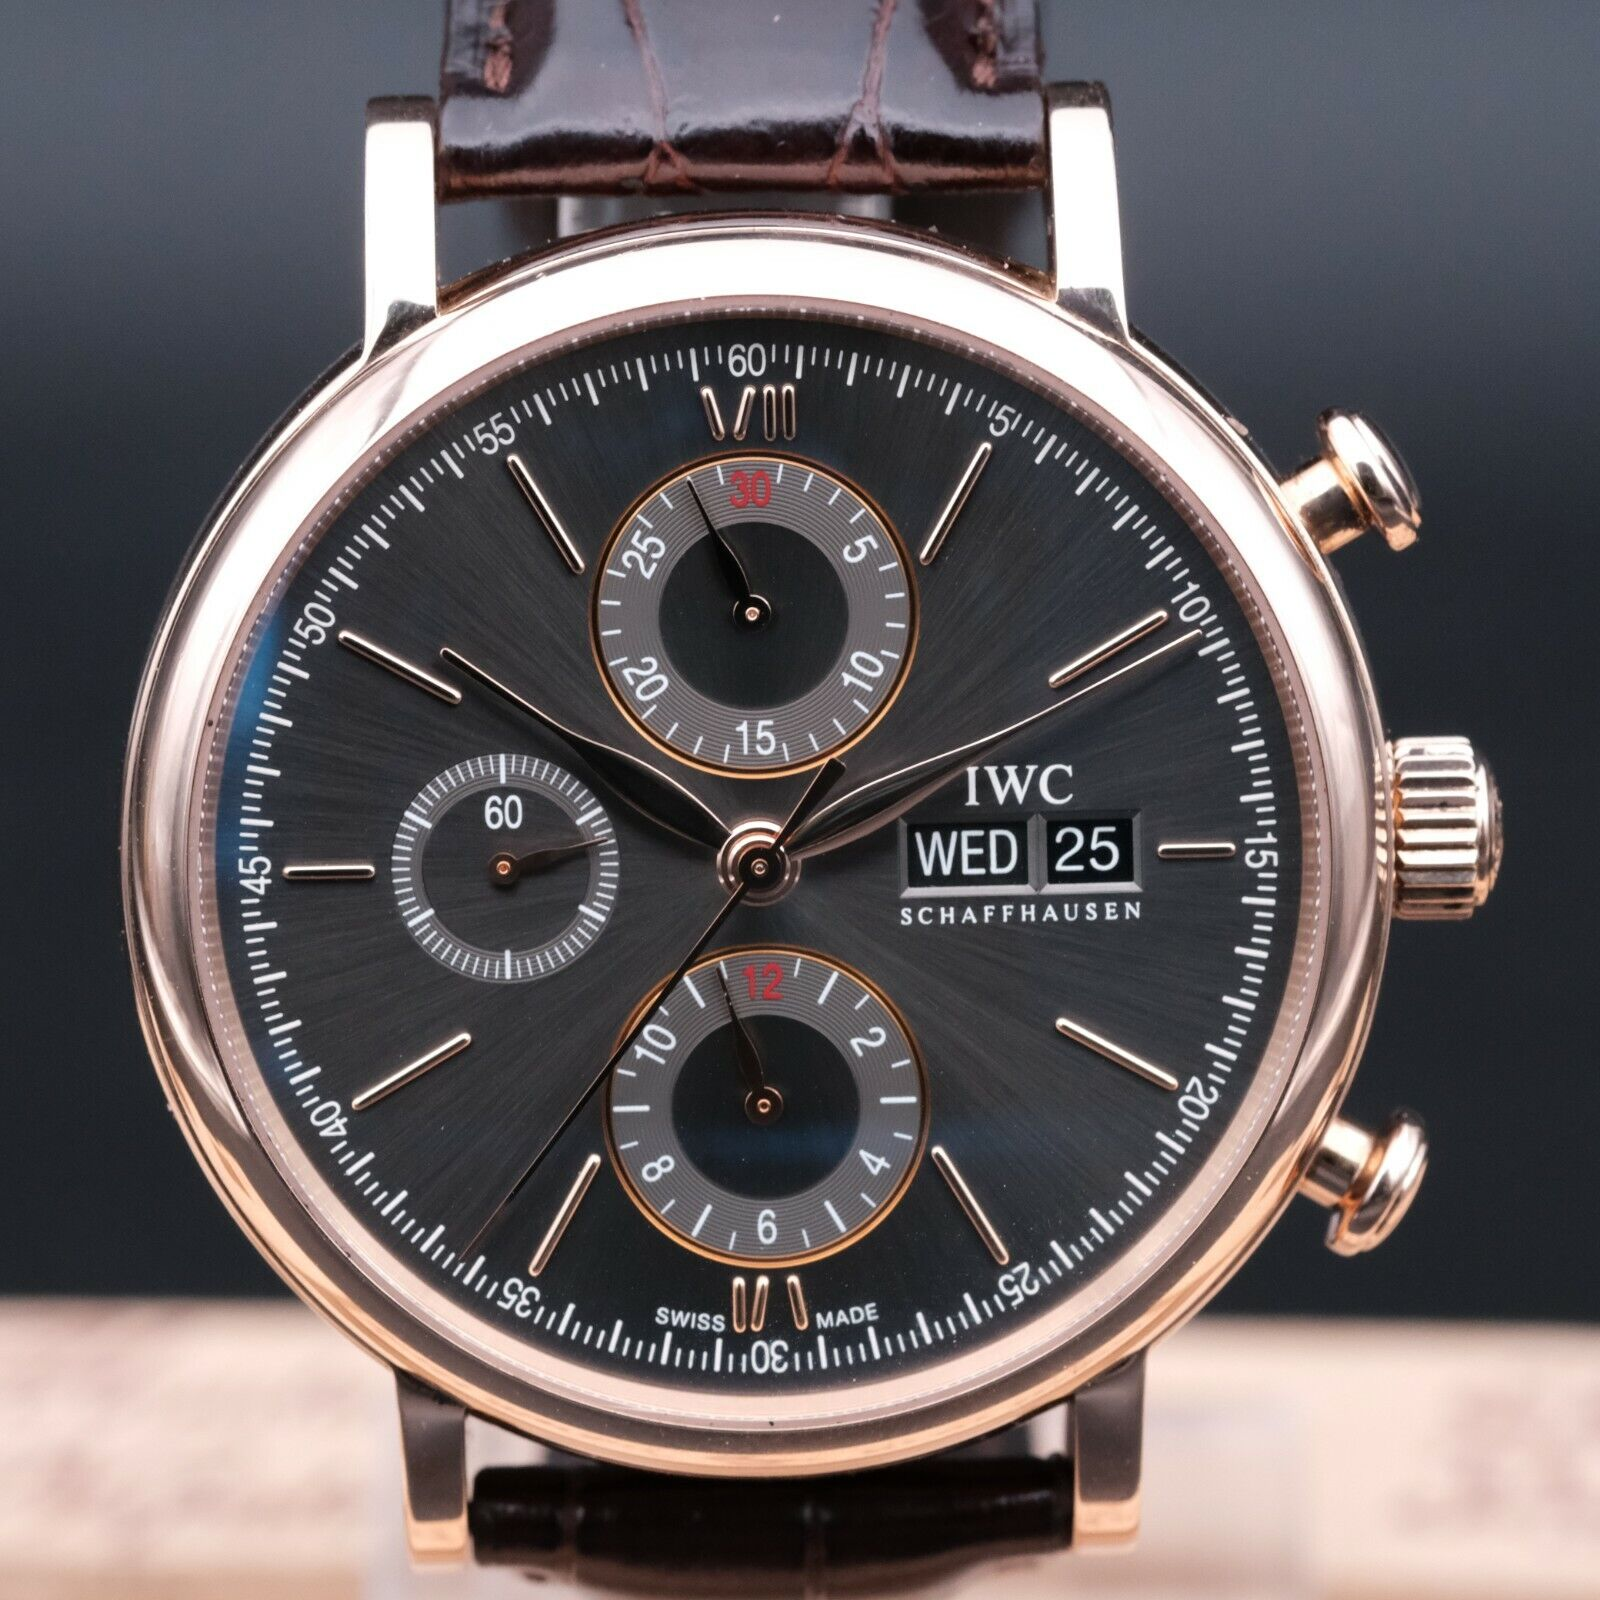 AUTHENTIC MINT IWC PORTOFINO CHRONOGRAPH 18K ROSE GOLD 42MM IW391021, IWC_798770 - watch picture 1